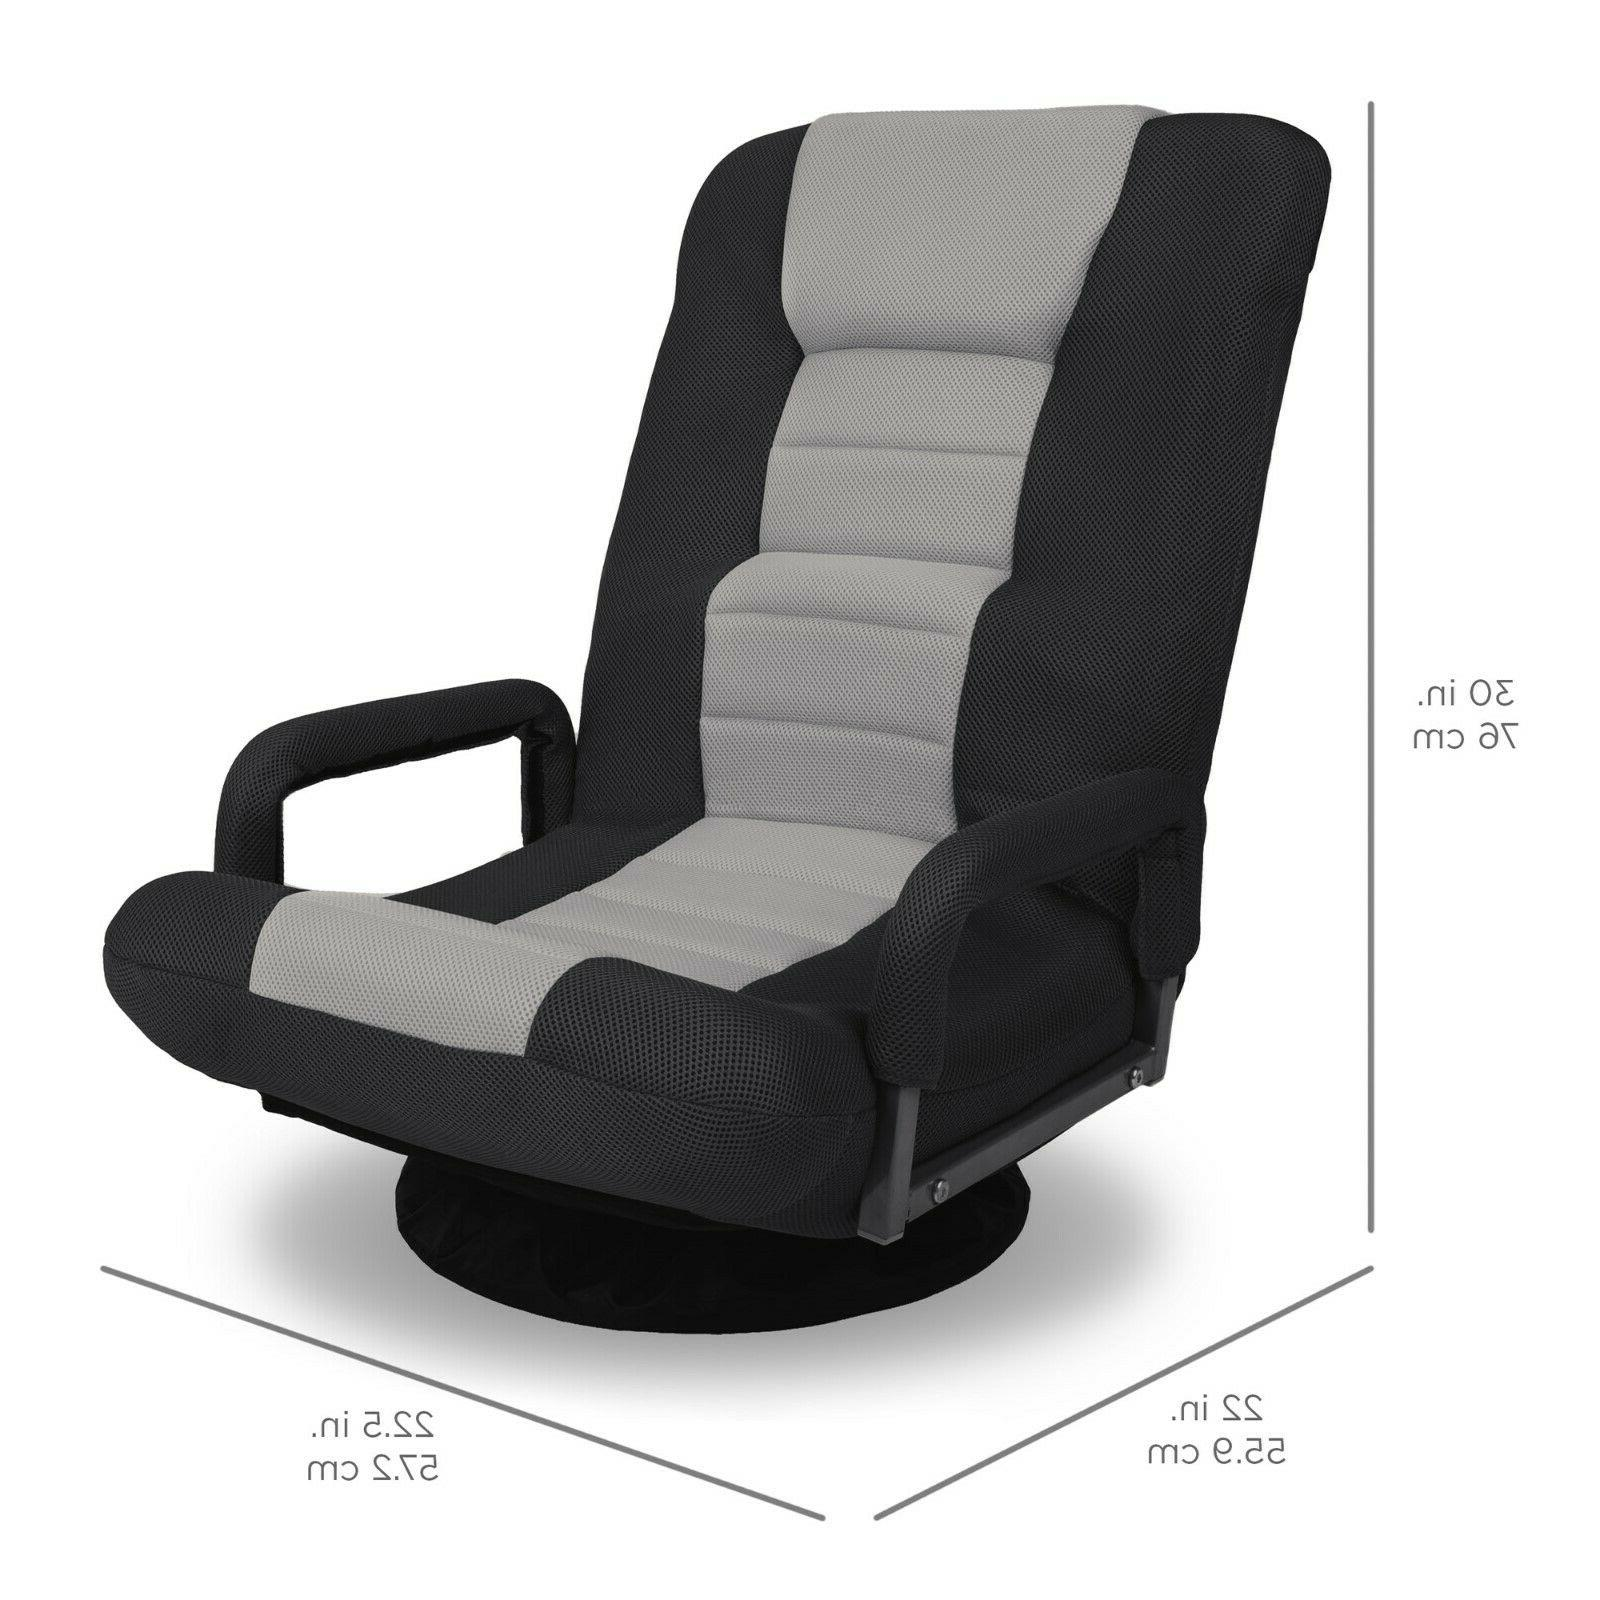 Best Products 360-Degree Swivel Chair w/ Armrest Handles